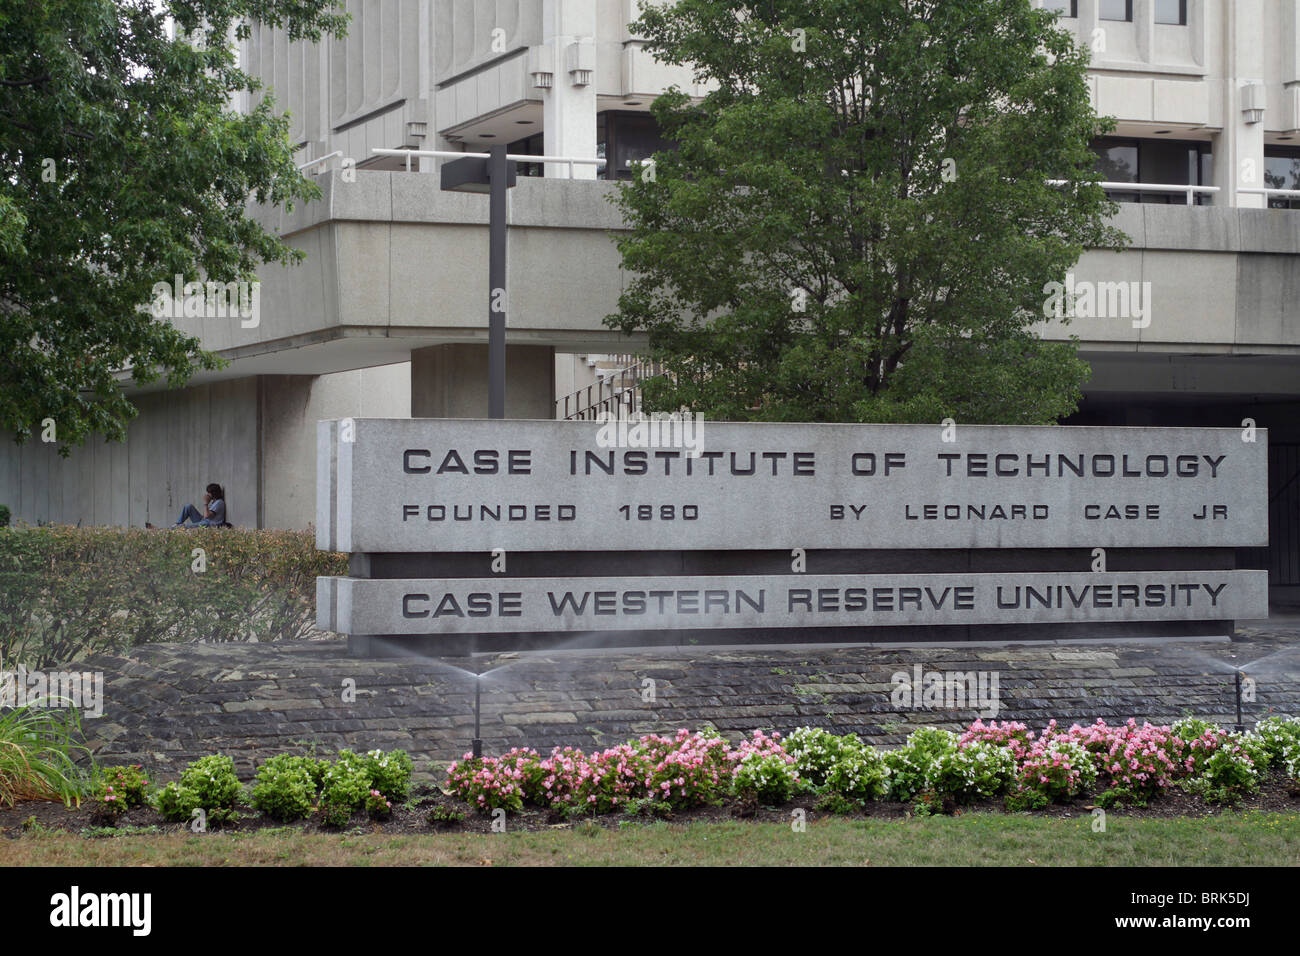 Case Institute of Technology, Crawford hall, Case Western